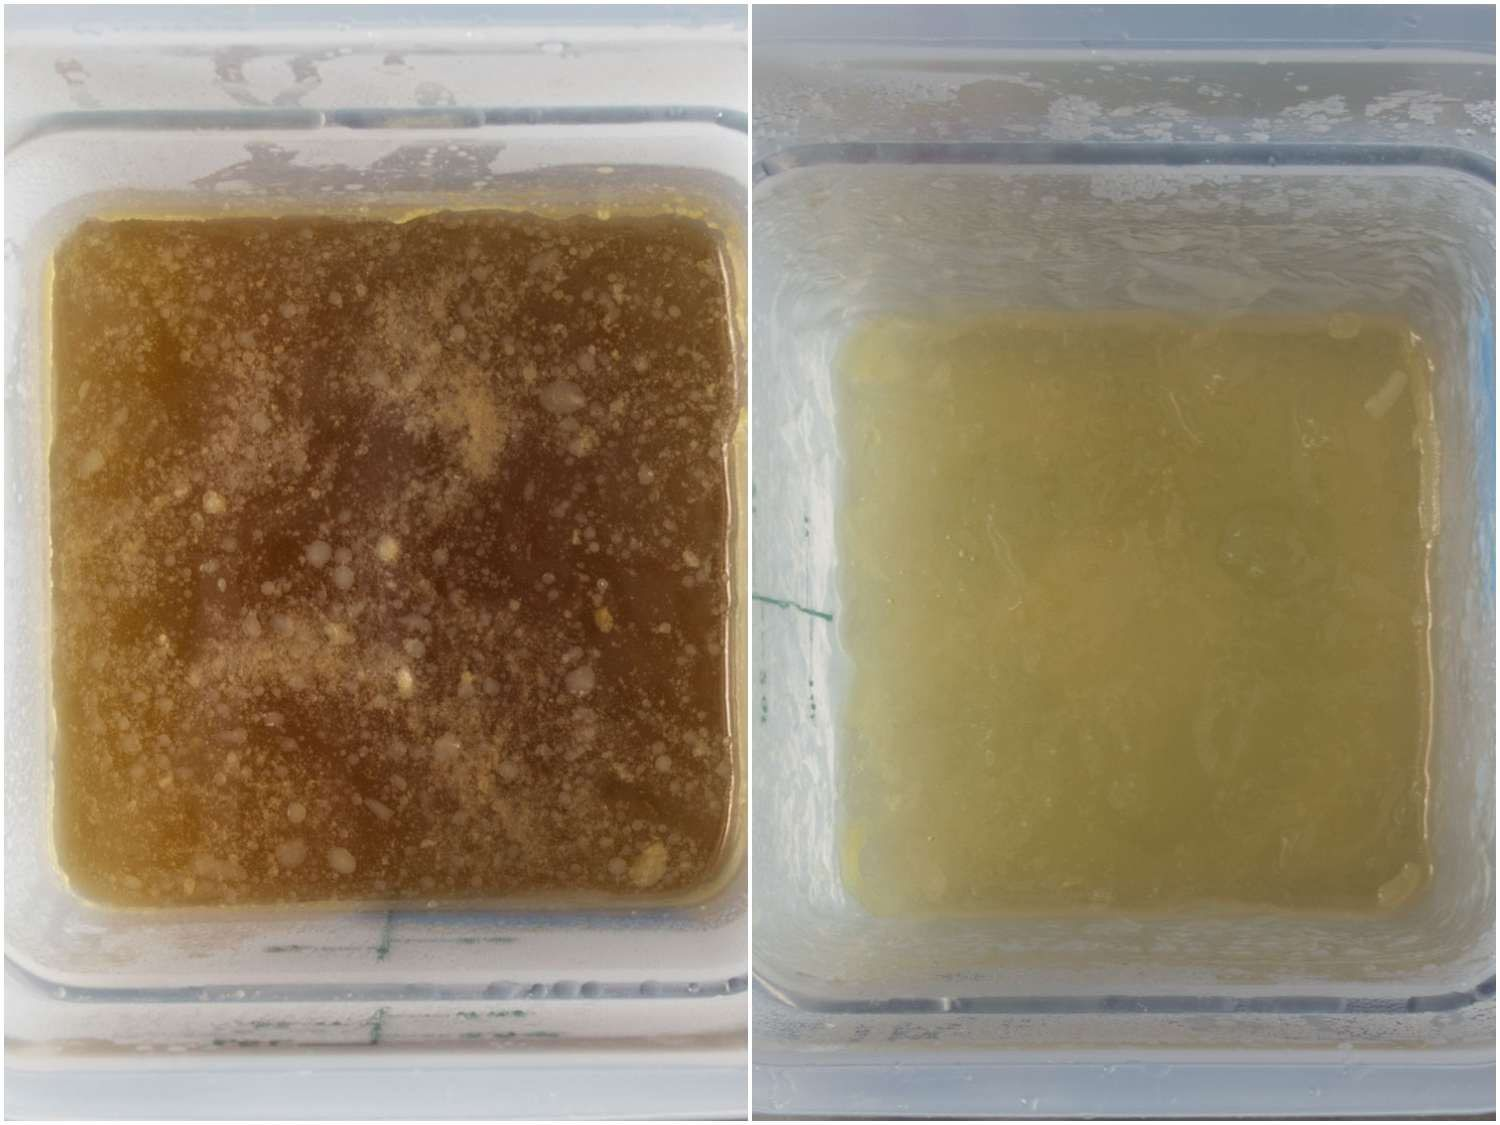 Side by side comparison of broth in which vegetables have been simmered versus broth in which vegetables have been steeped